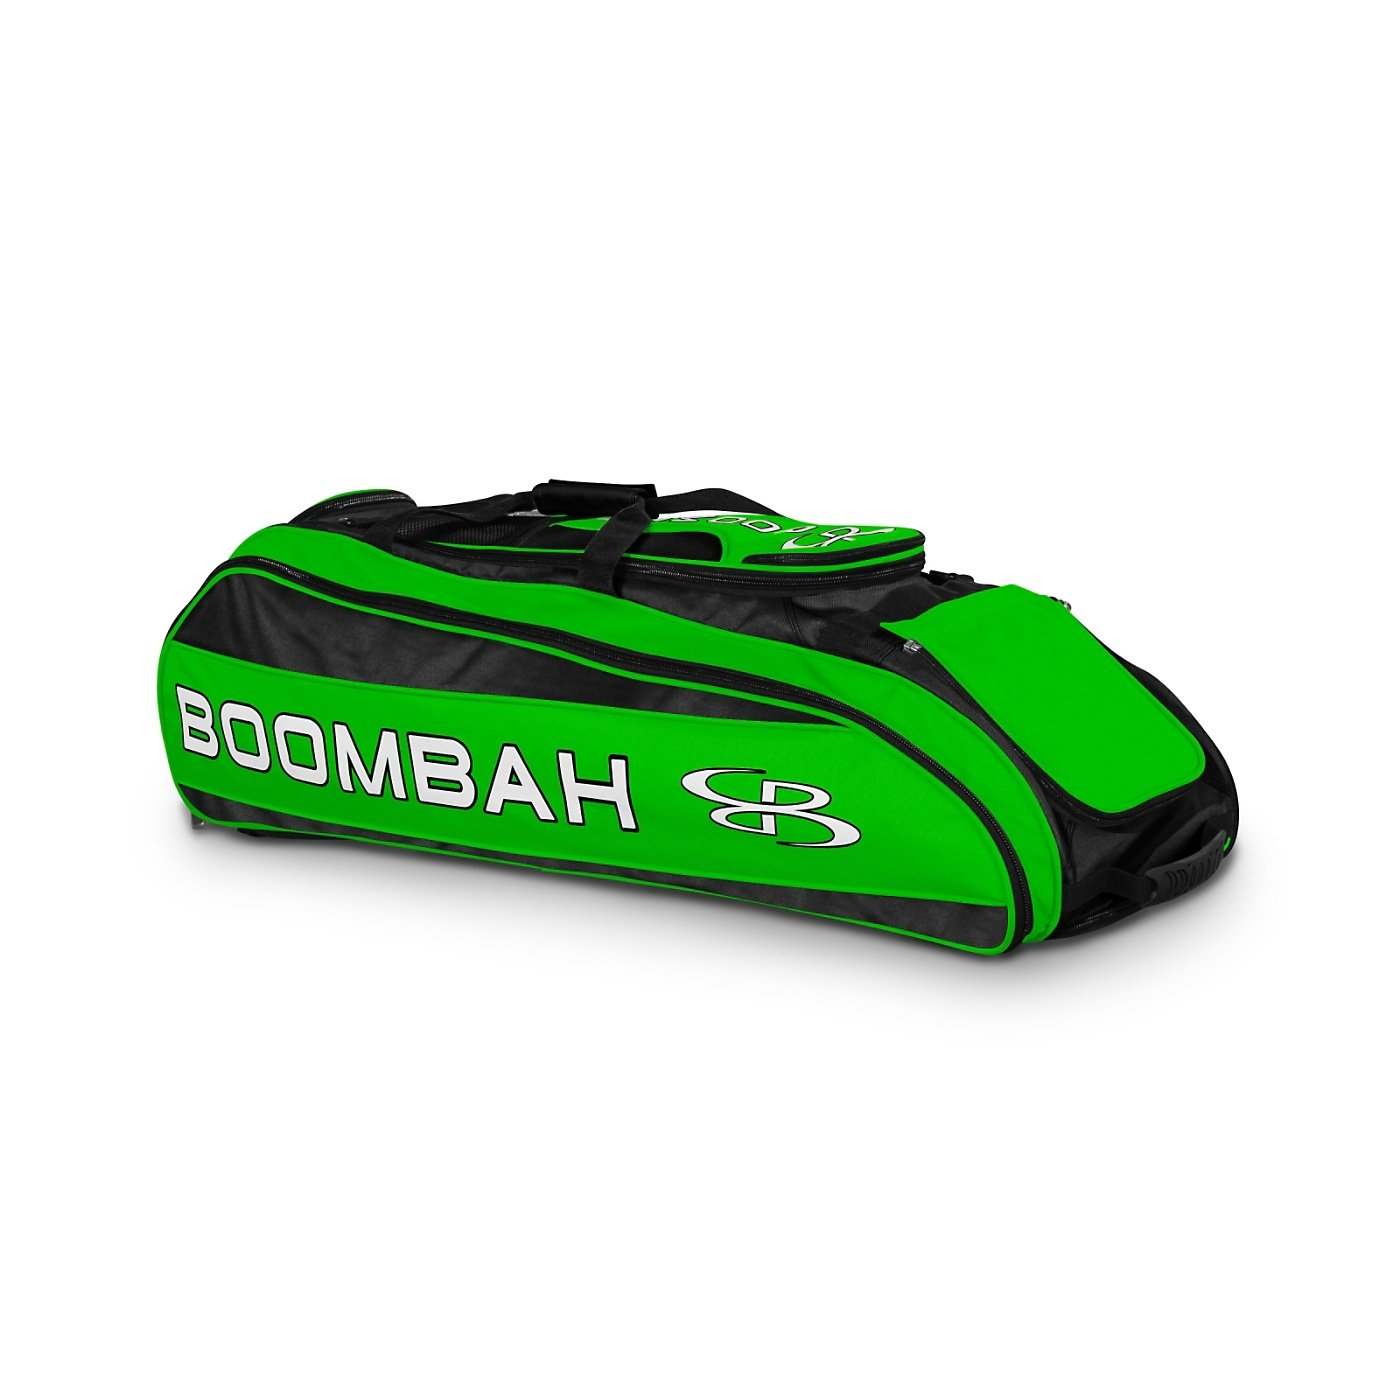 Boombah Beast Baseball/Softball Bat Bag - 40'' x 14'' x 13'' - Black/Lime Green - Holds 8 Bats, Glove & Shoe Compartments by Boombah (Image #1)